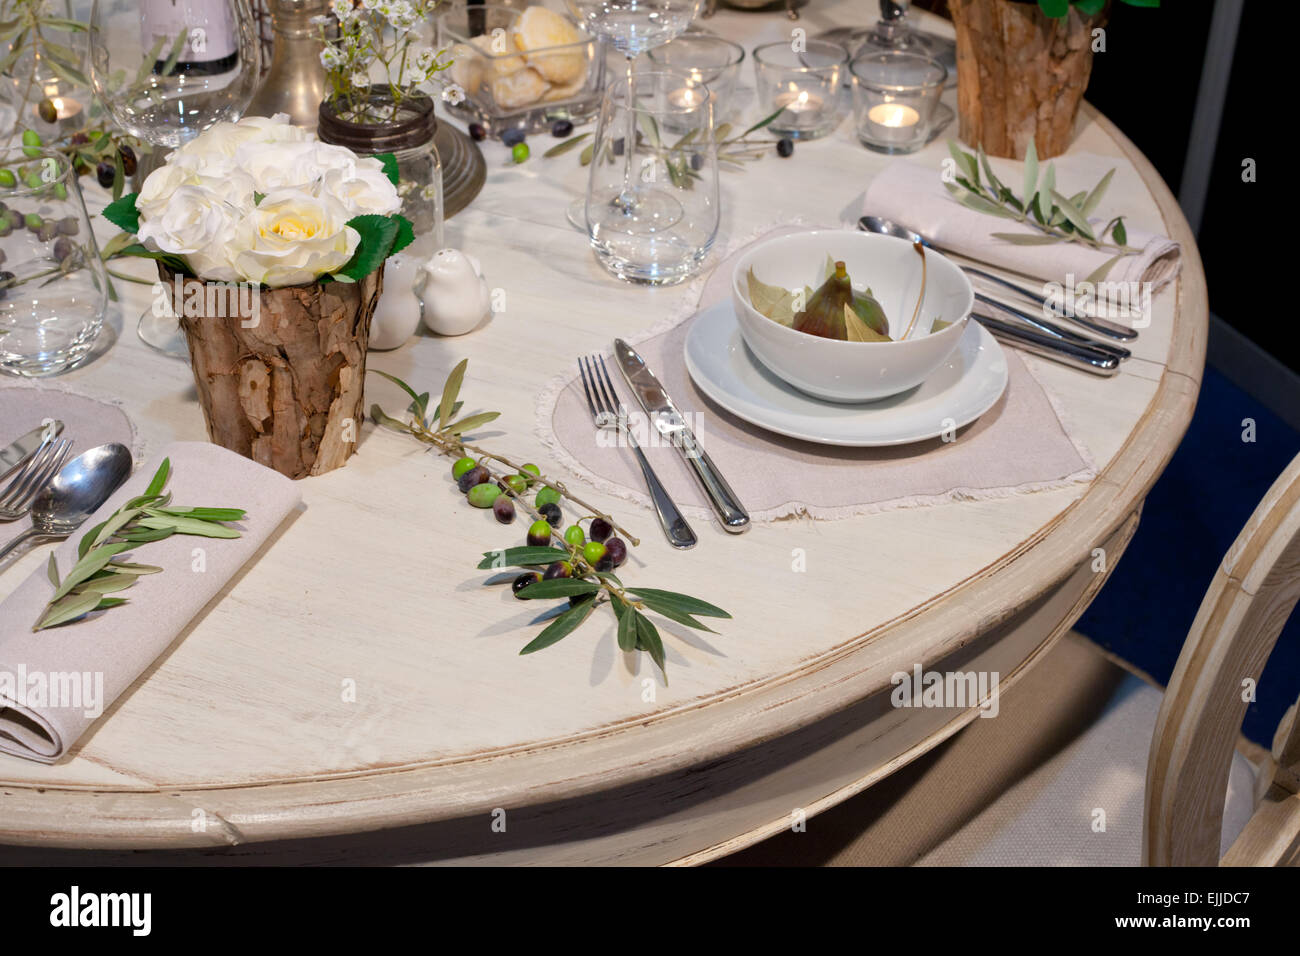 Decoration of wedding table with wooden trunk vases, figs, and olives branch - Stock Image